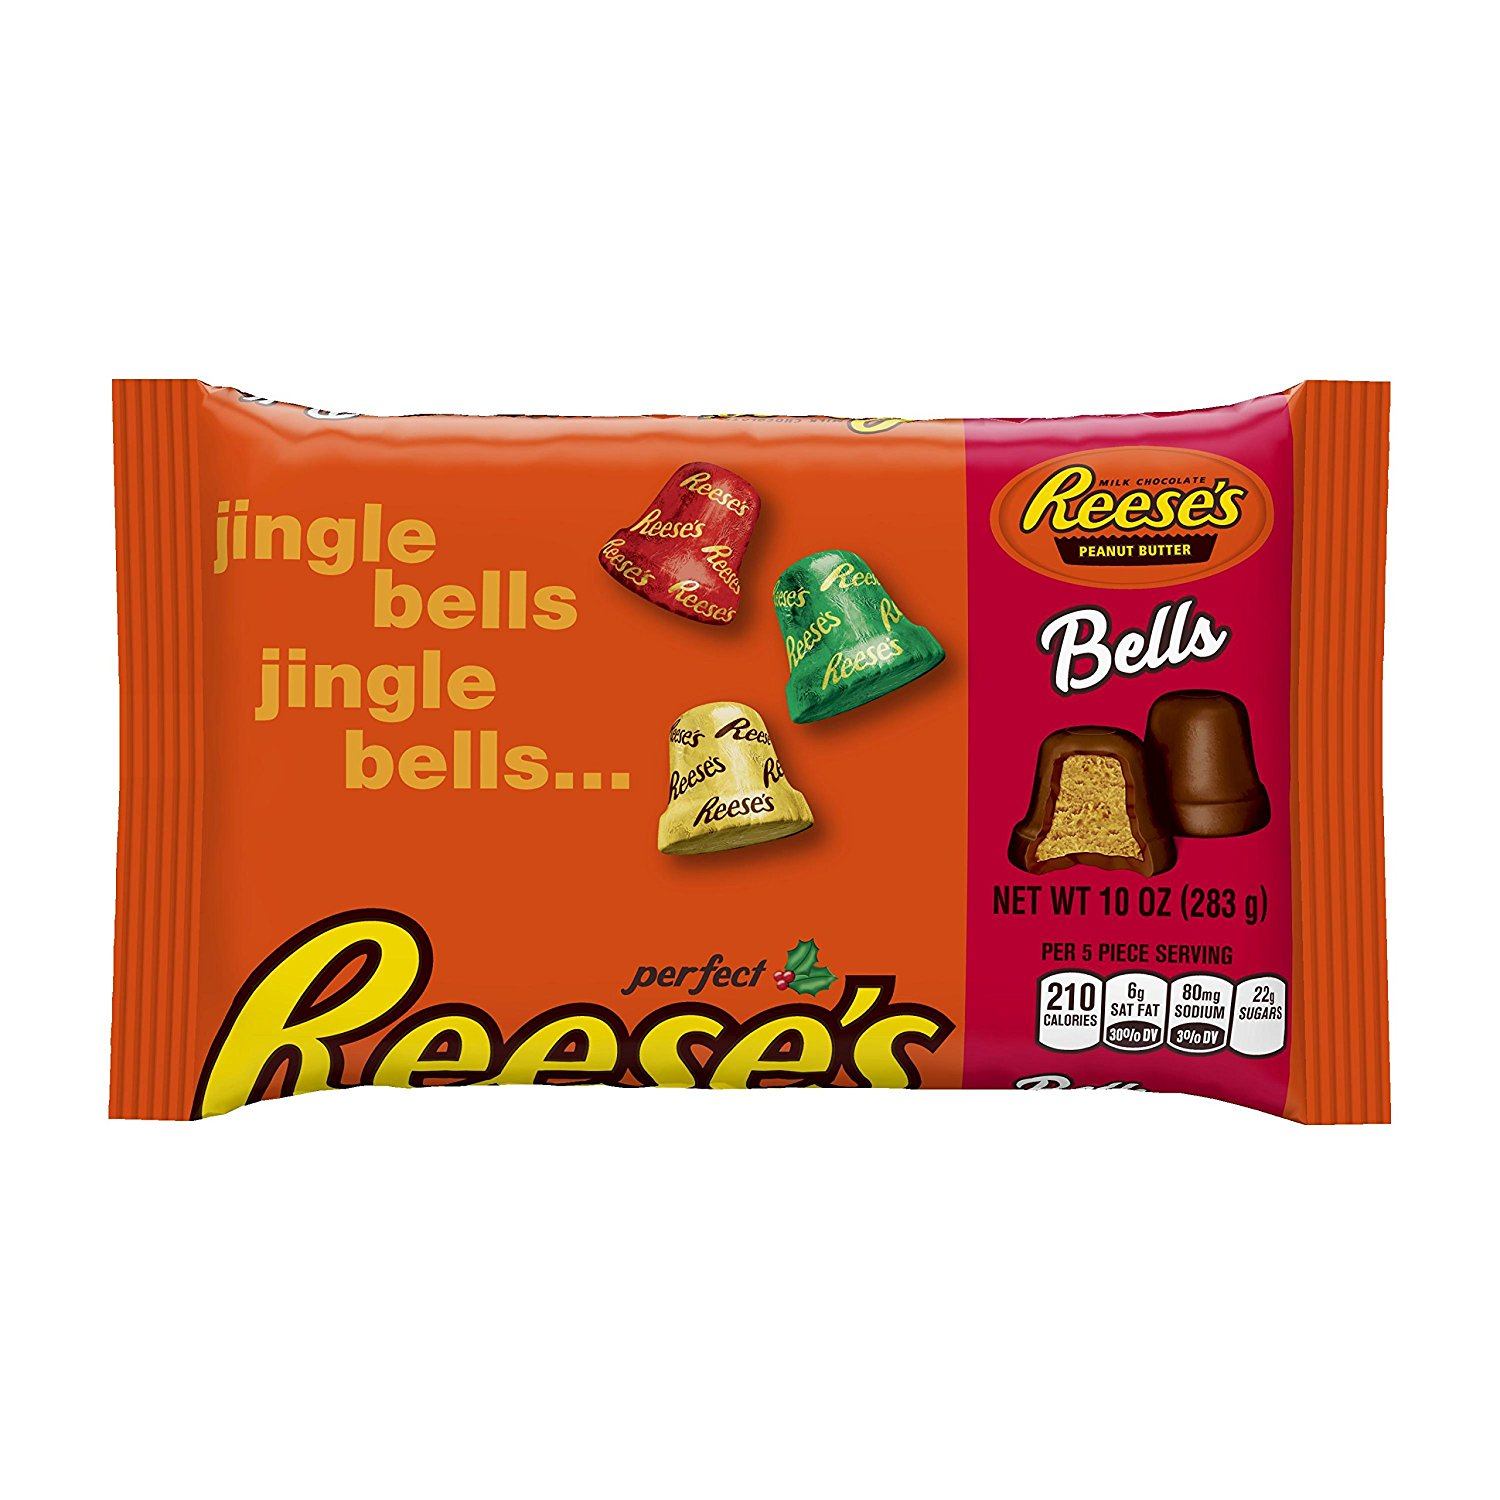 Reese's Holiday Peanut Butter Bells, 10-Ounce Bags (Pack of 4)